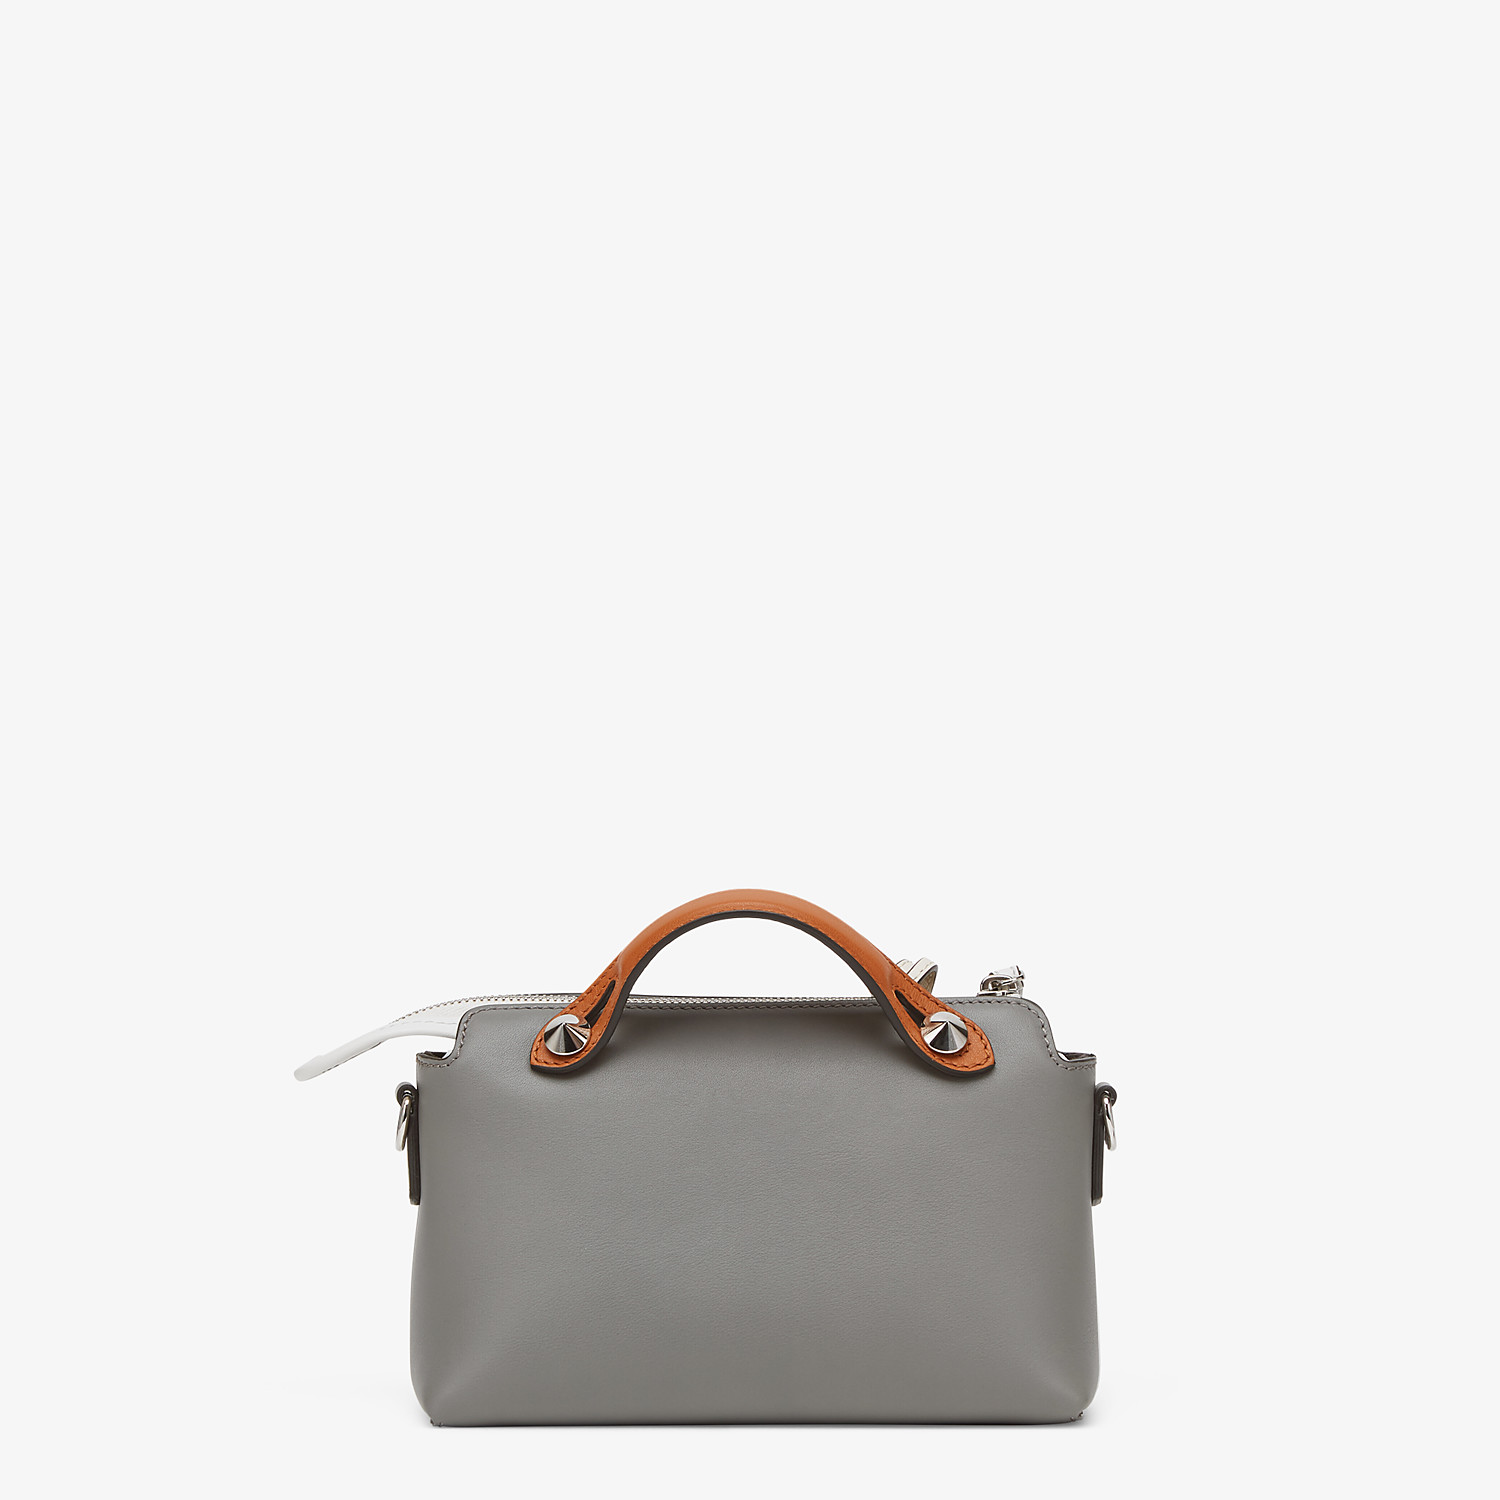 FENDI BY THE WAY MINI - Gray leather Boston bag - view 3 detail